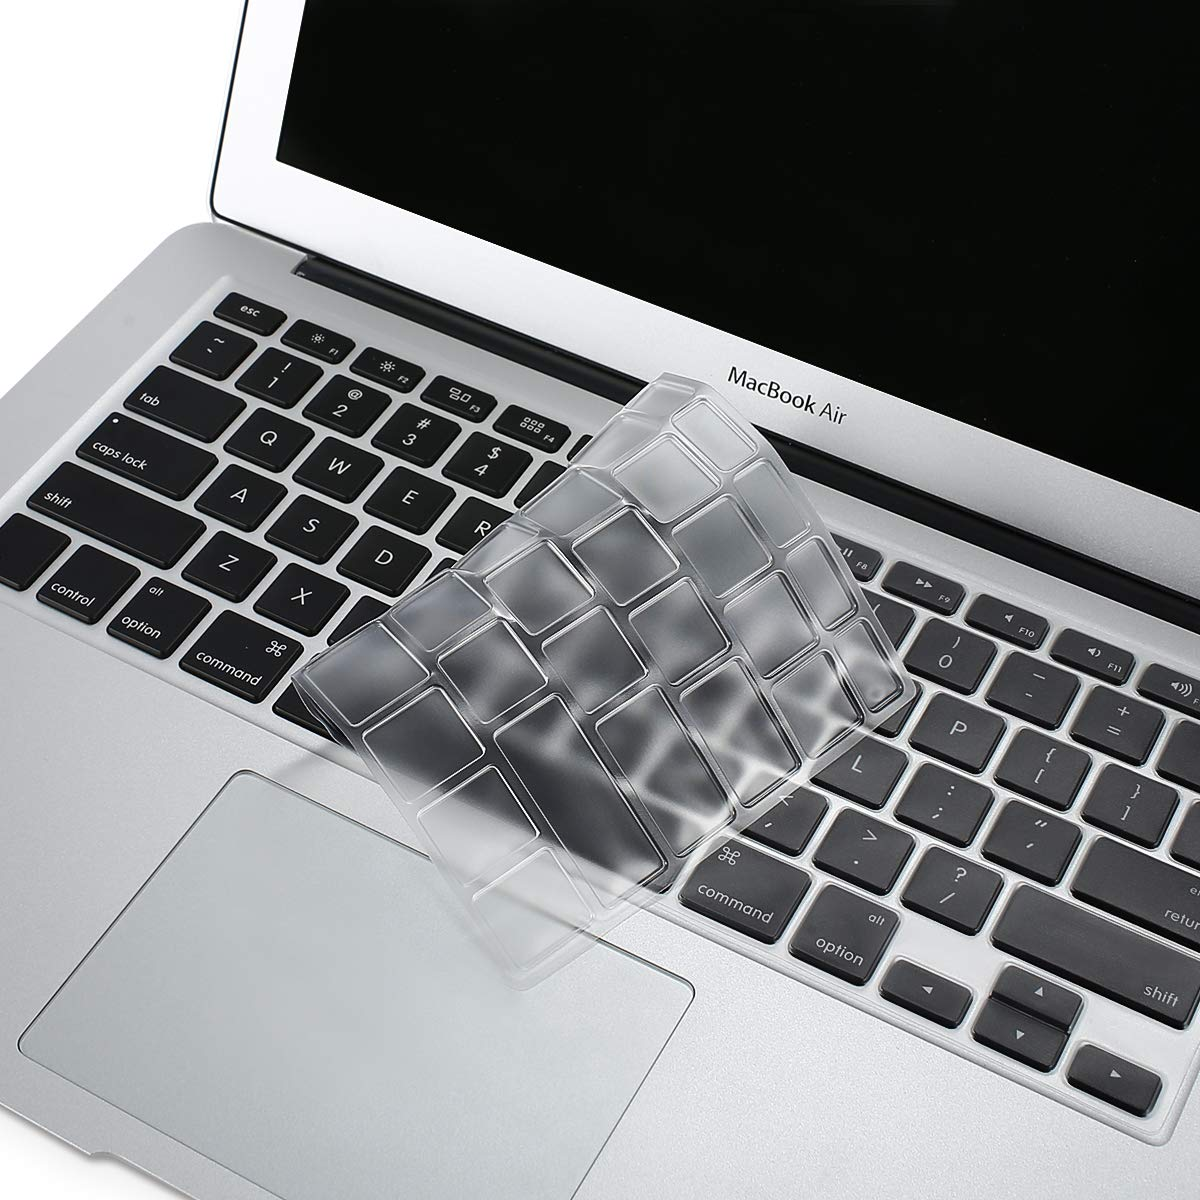 MOSISO Ultra Thin Keyboard Cover Protector Soft TPU Skin Compatible MacBook Pro 13//15 Inch with//Without Retina Display, 2015 or Older Version MacBook Air 13 Inch Rose Quartz Release 2010-2017